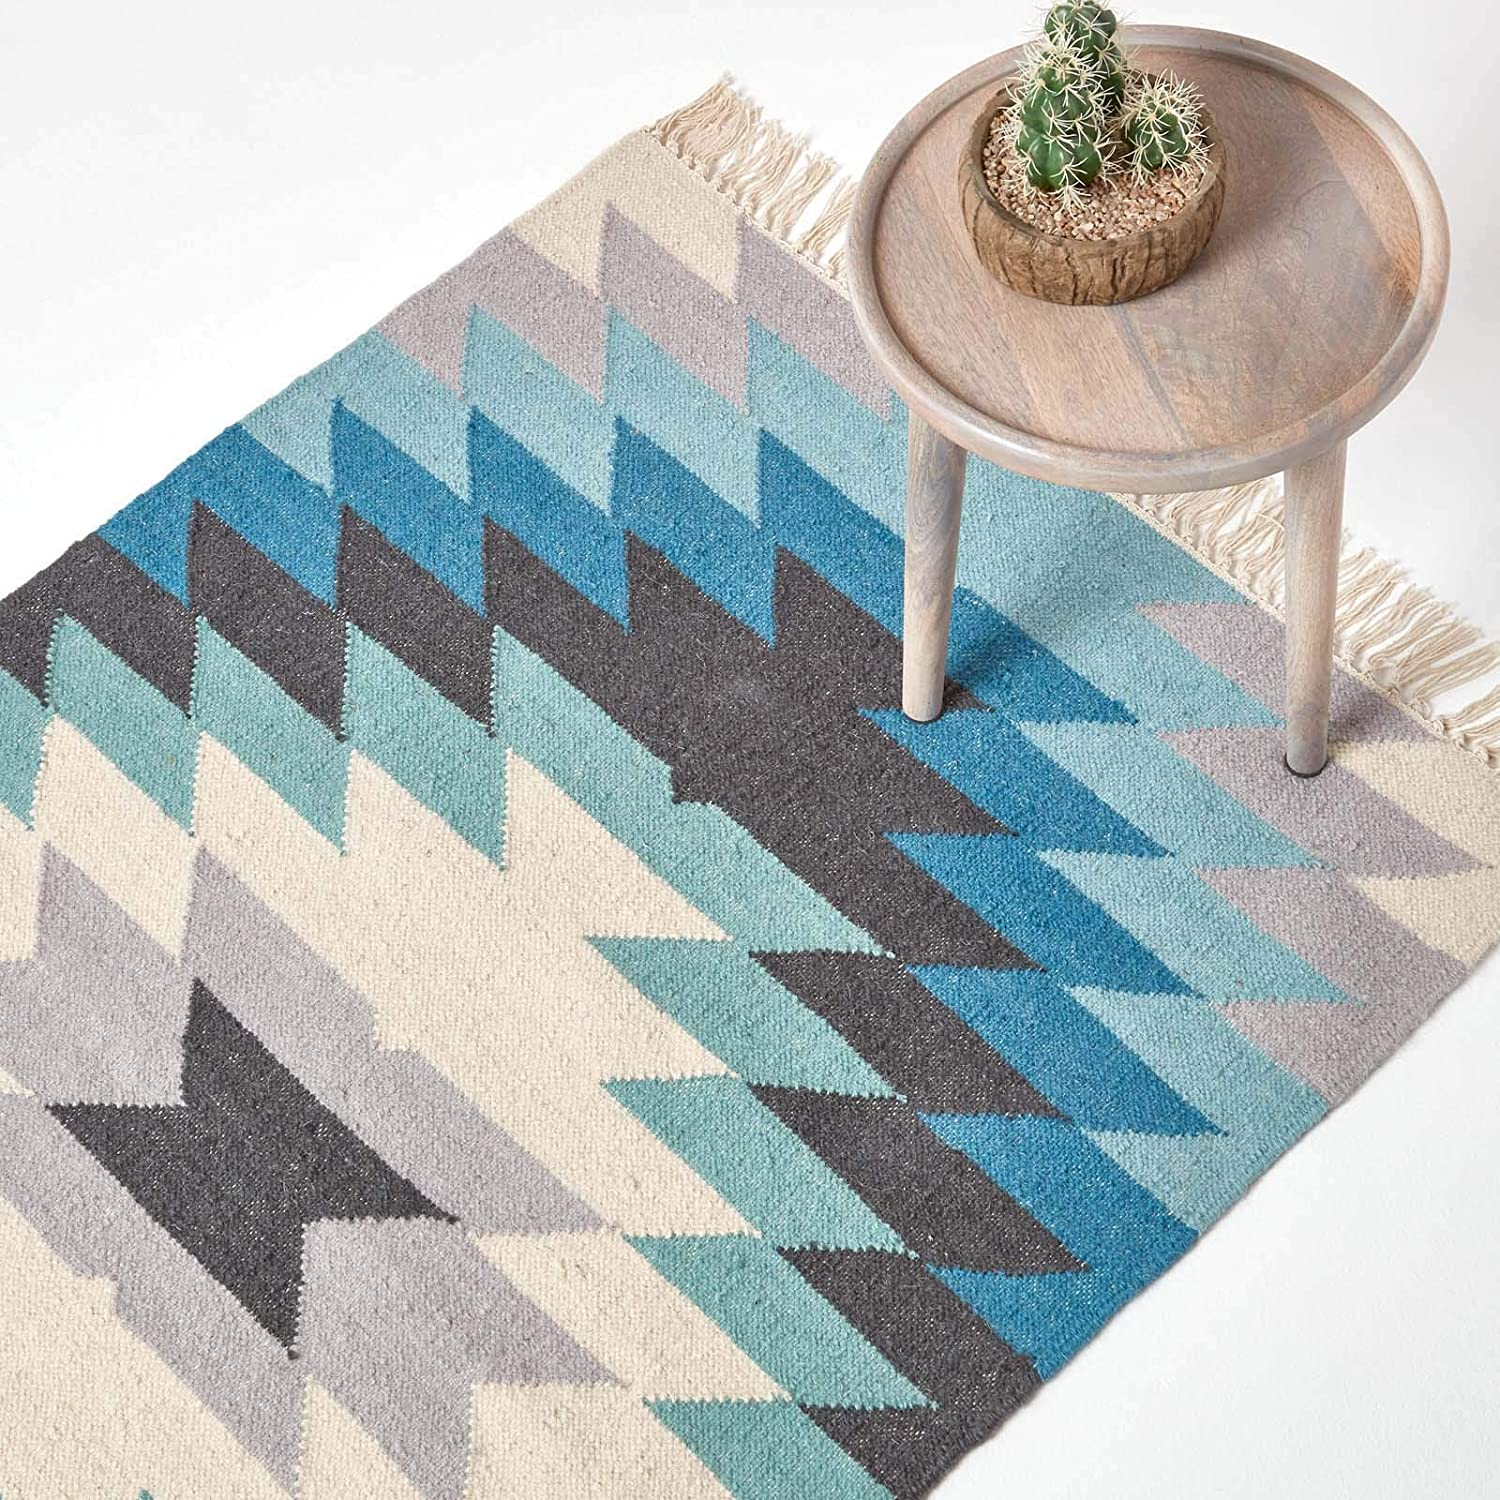 Homescapes Helsinki Handwoven Kilim Wool Rug Scandi Style Geometric Pattern Blue Grey And Off White With Tassel Fringe 120 X 170 Cm Amazon Co Uk Kitchen Home